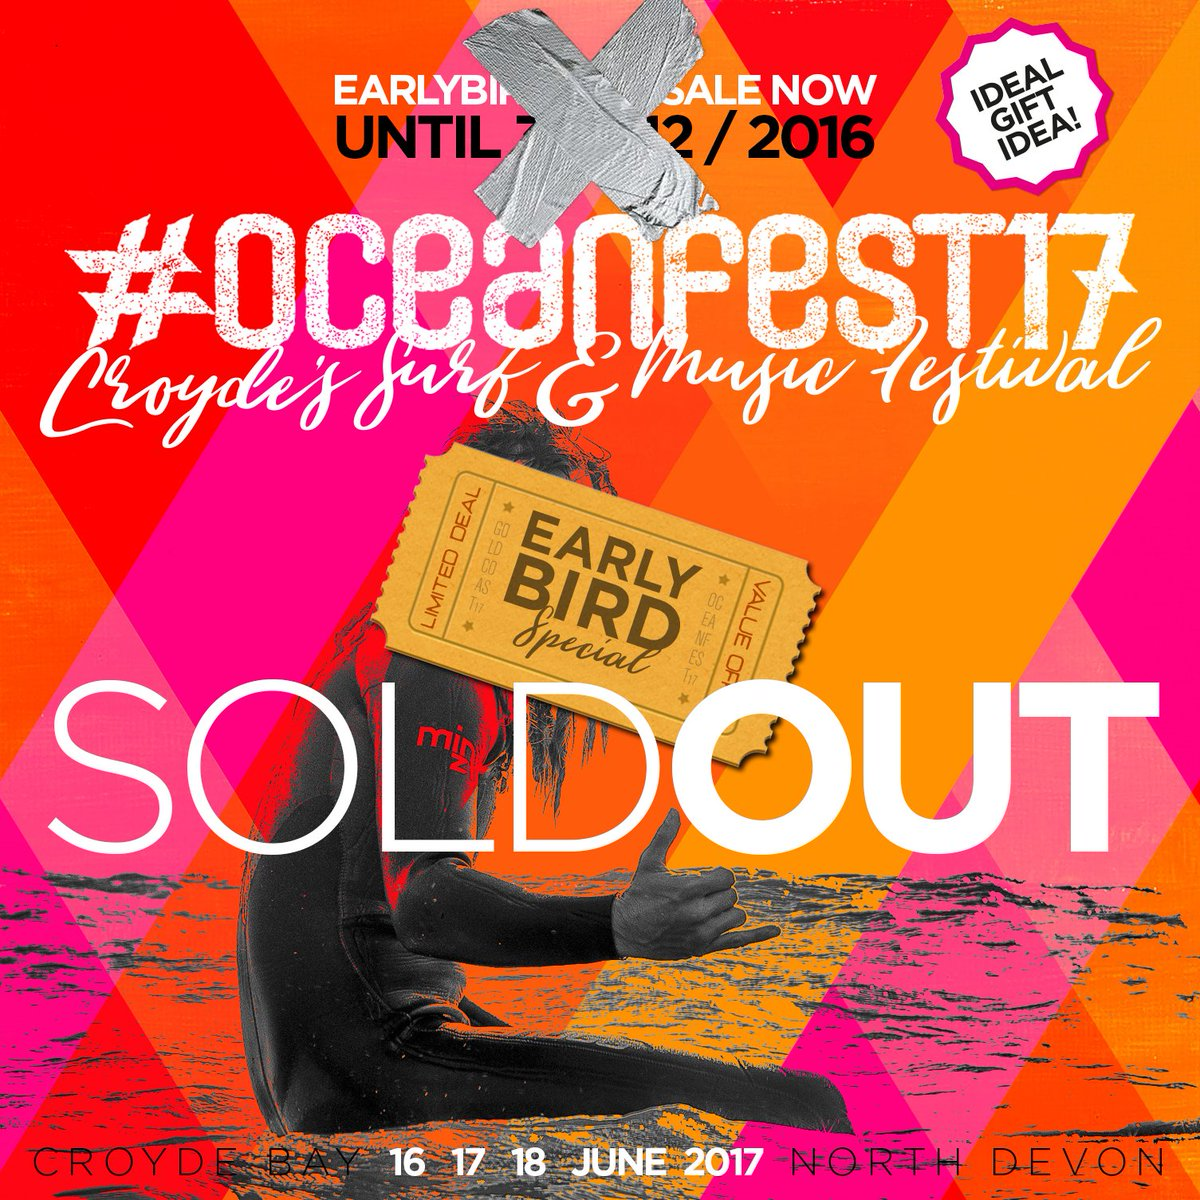 goldcoast oceanfest on twitter loads of happy and healthy new year wishes to all you goldcoasters heres to another fabulous midsummer party